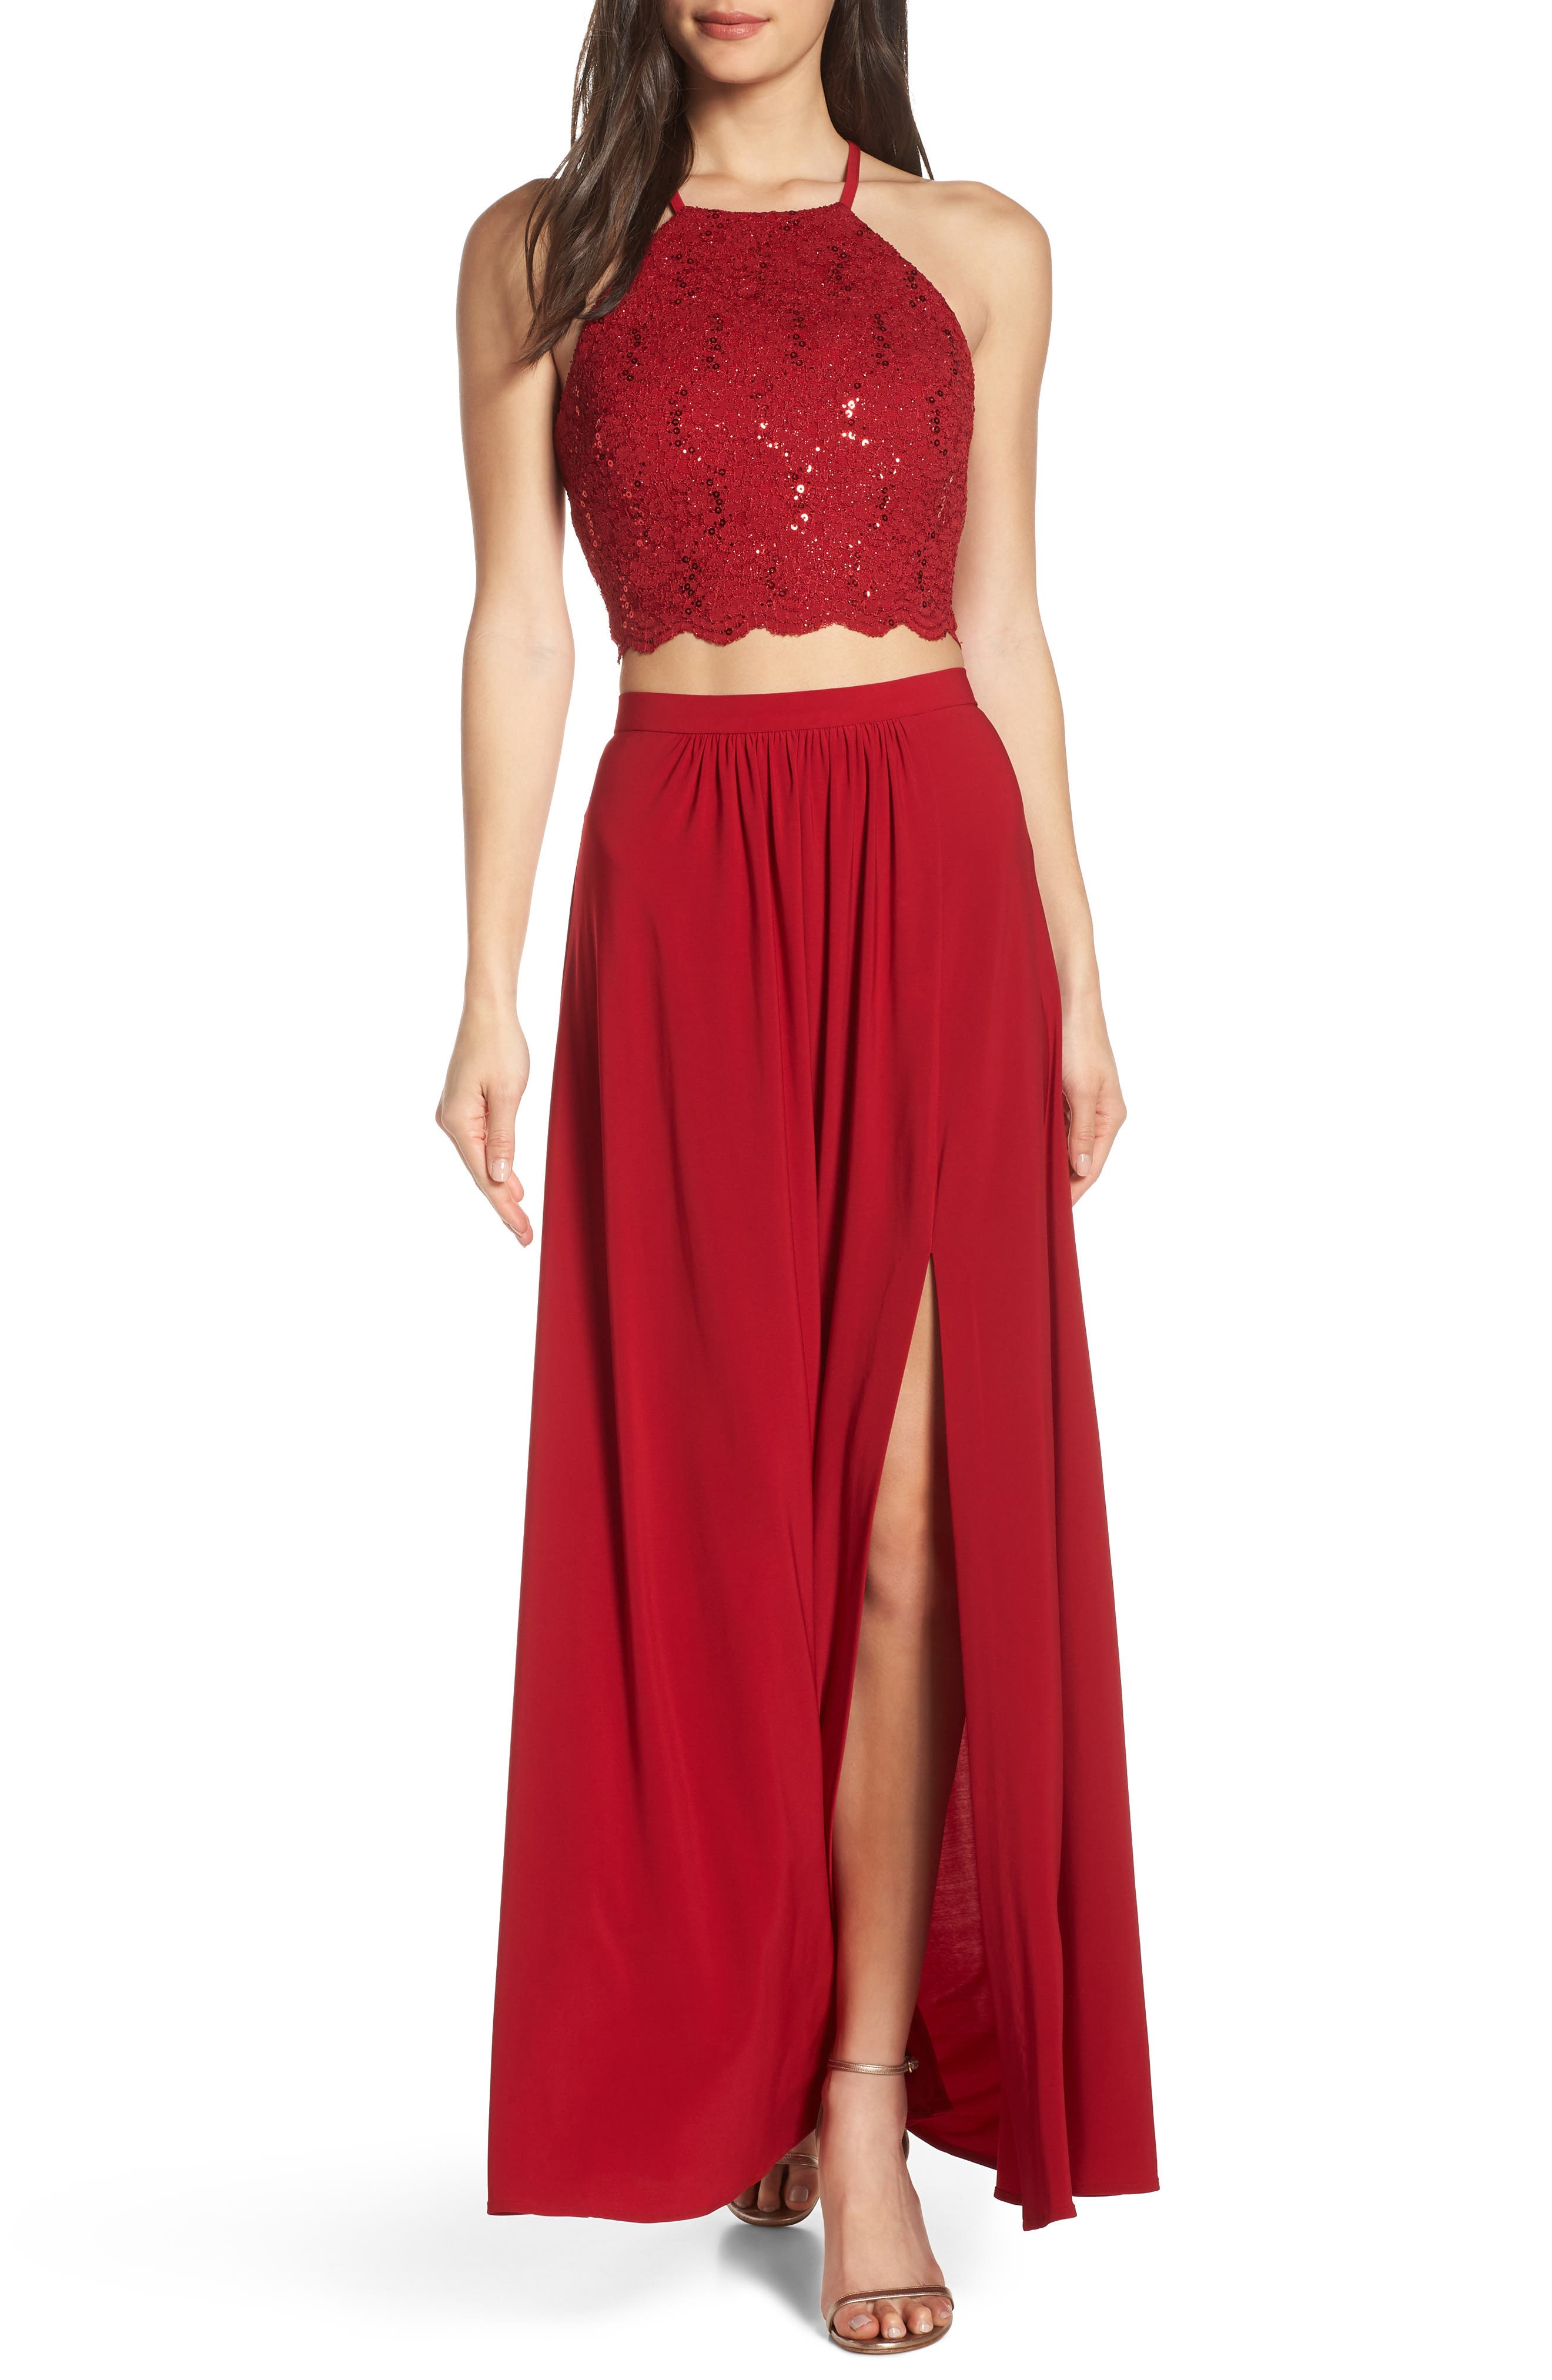 Morgan & Co. Two-Piece Lace Halter Bodice Evening Dress, Red